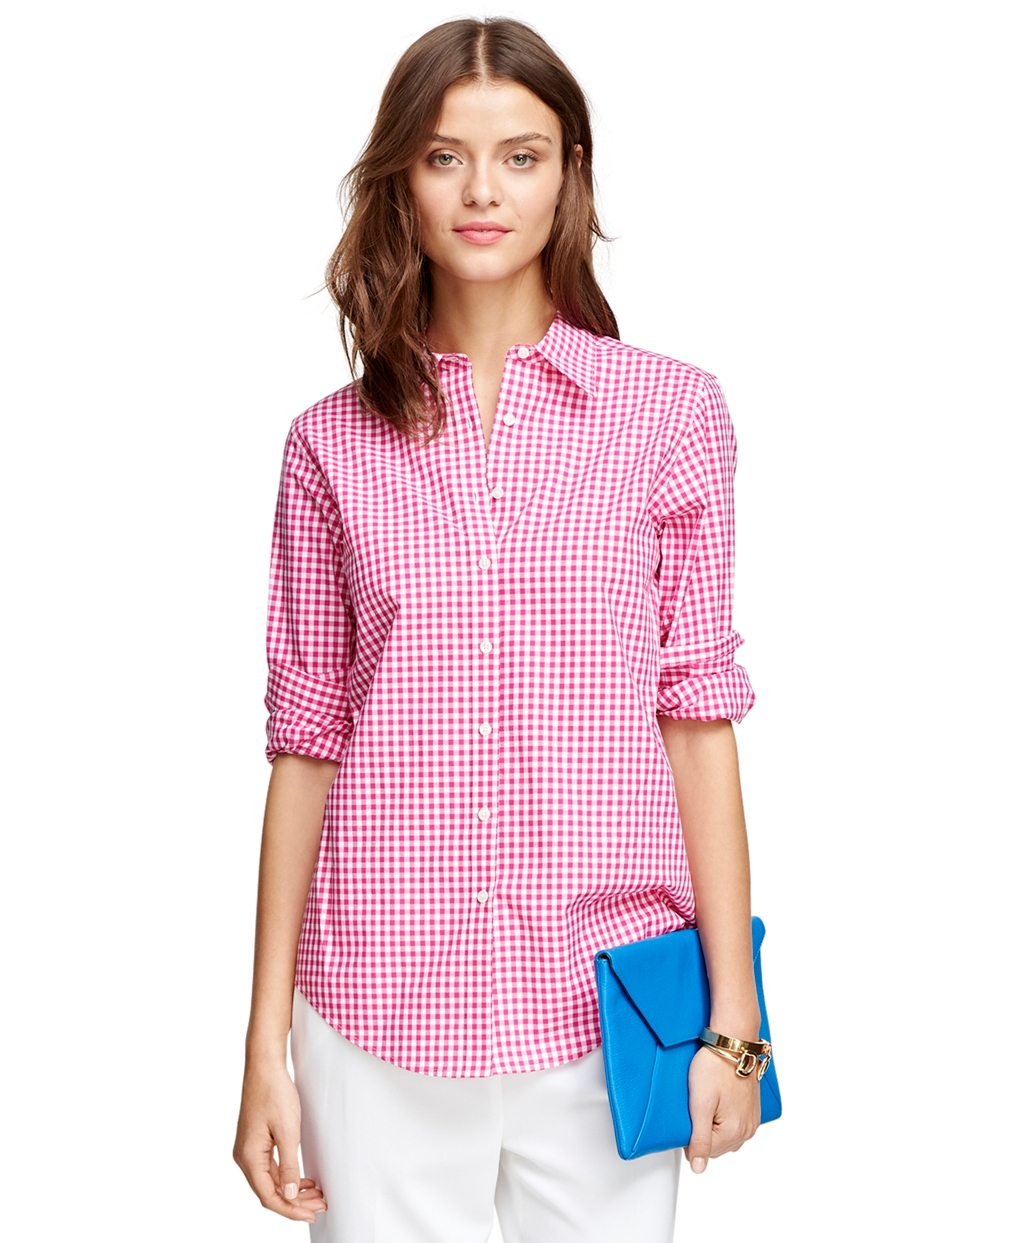 Brooks brothers non iron classic fit gingham dress shirt for Brooks brothers dress shirt fit guide